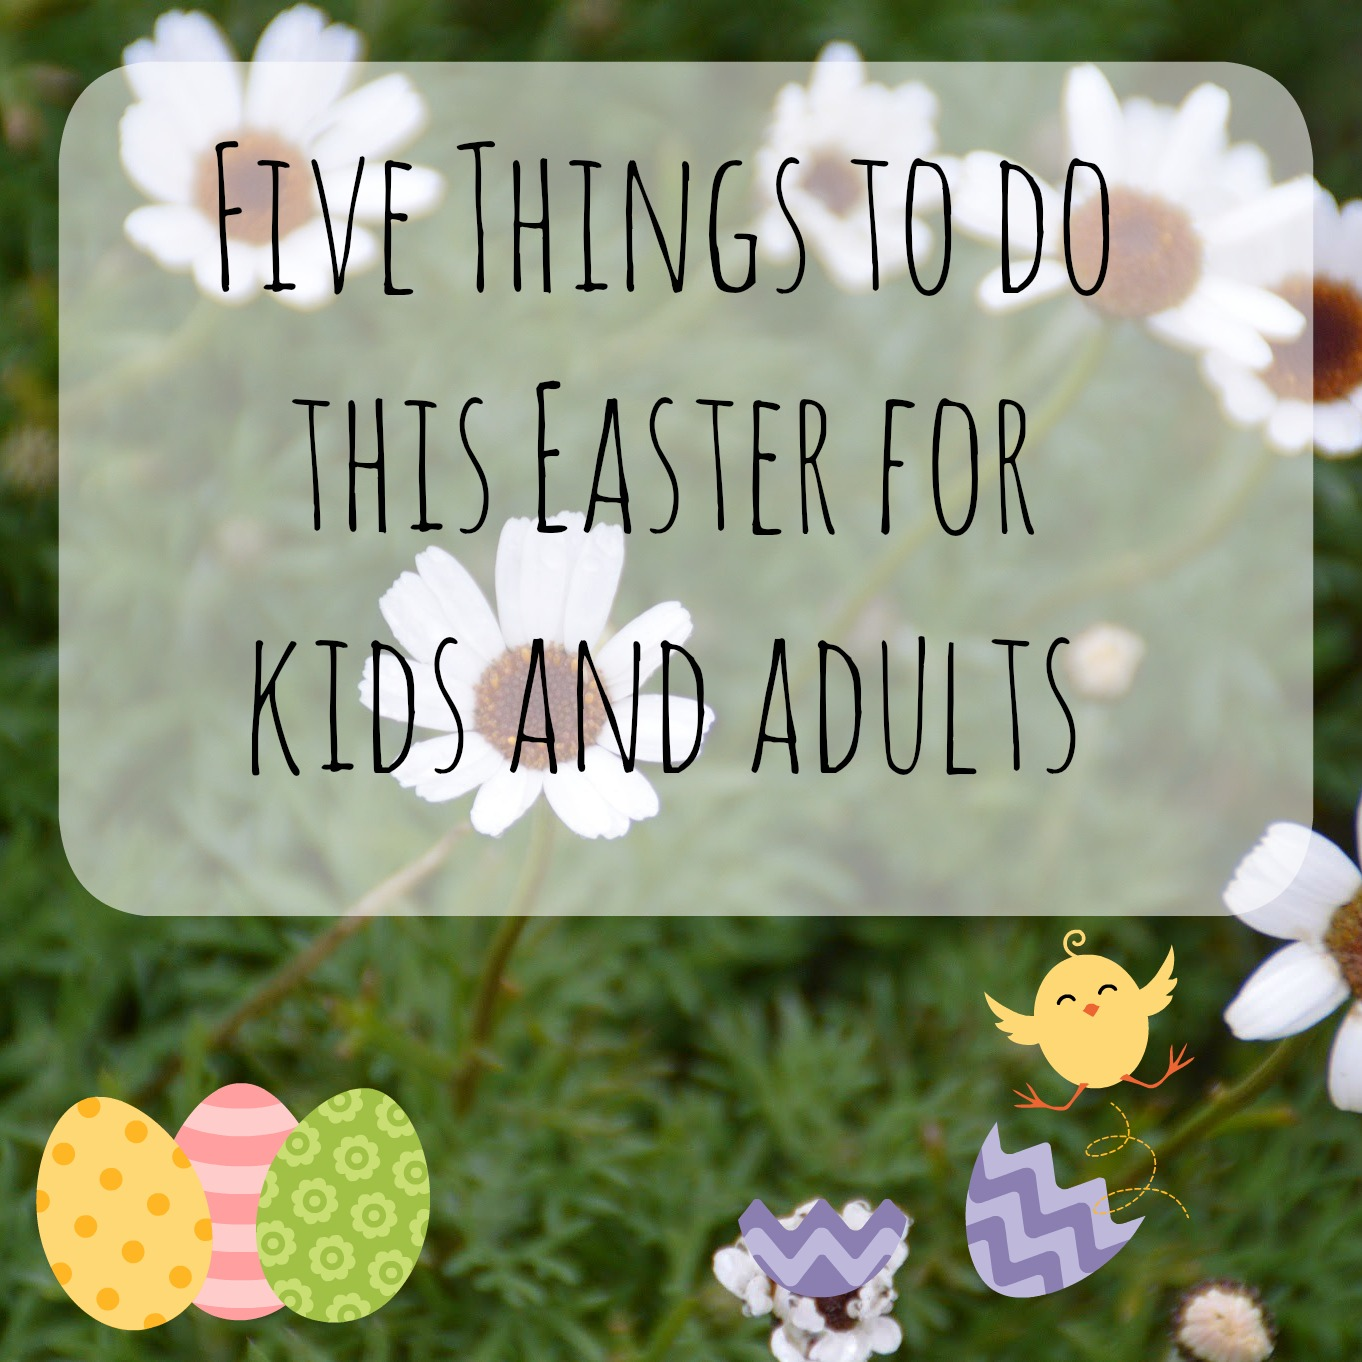 , Five Things to do this Easter For Kids and Grown Ups